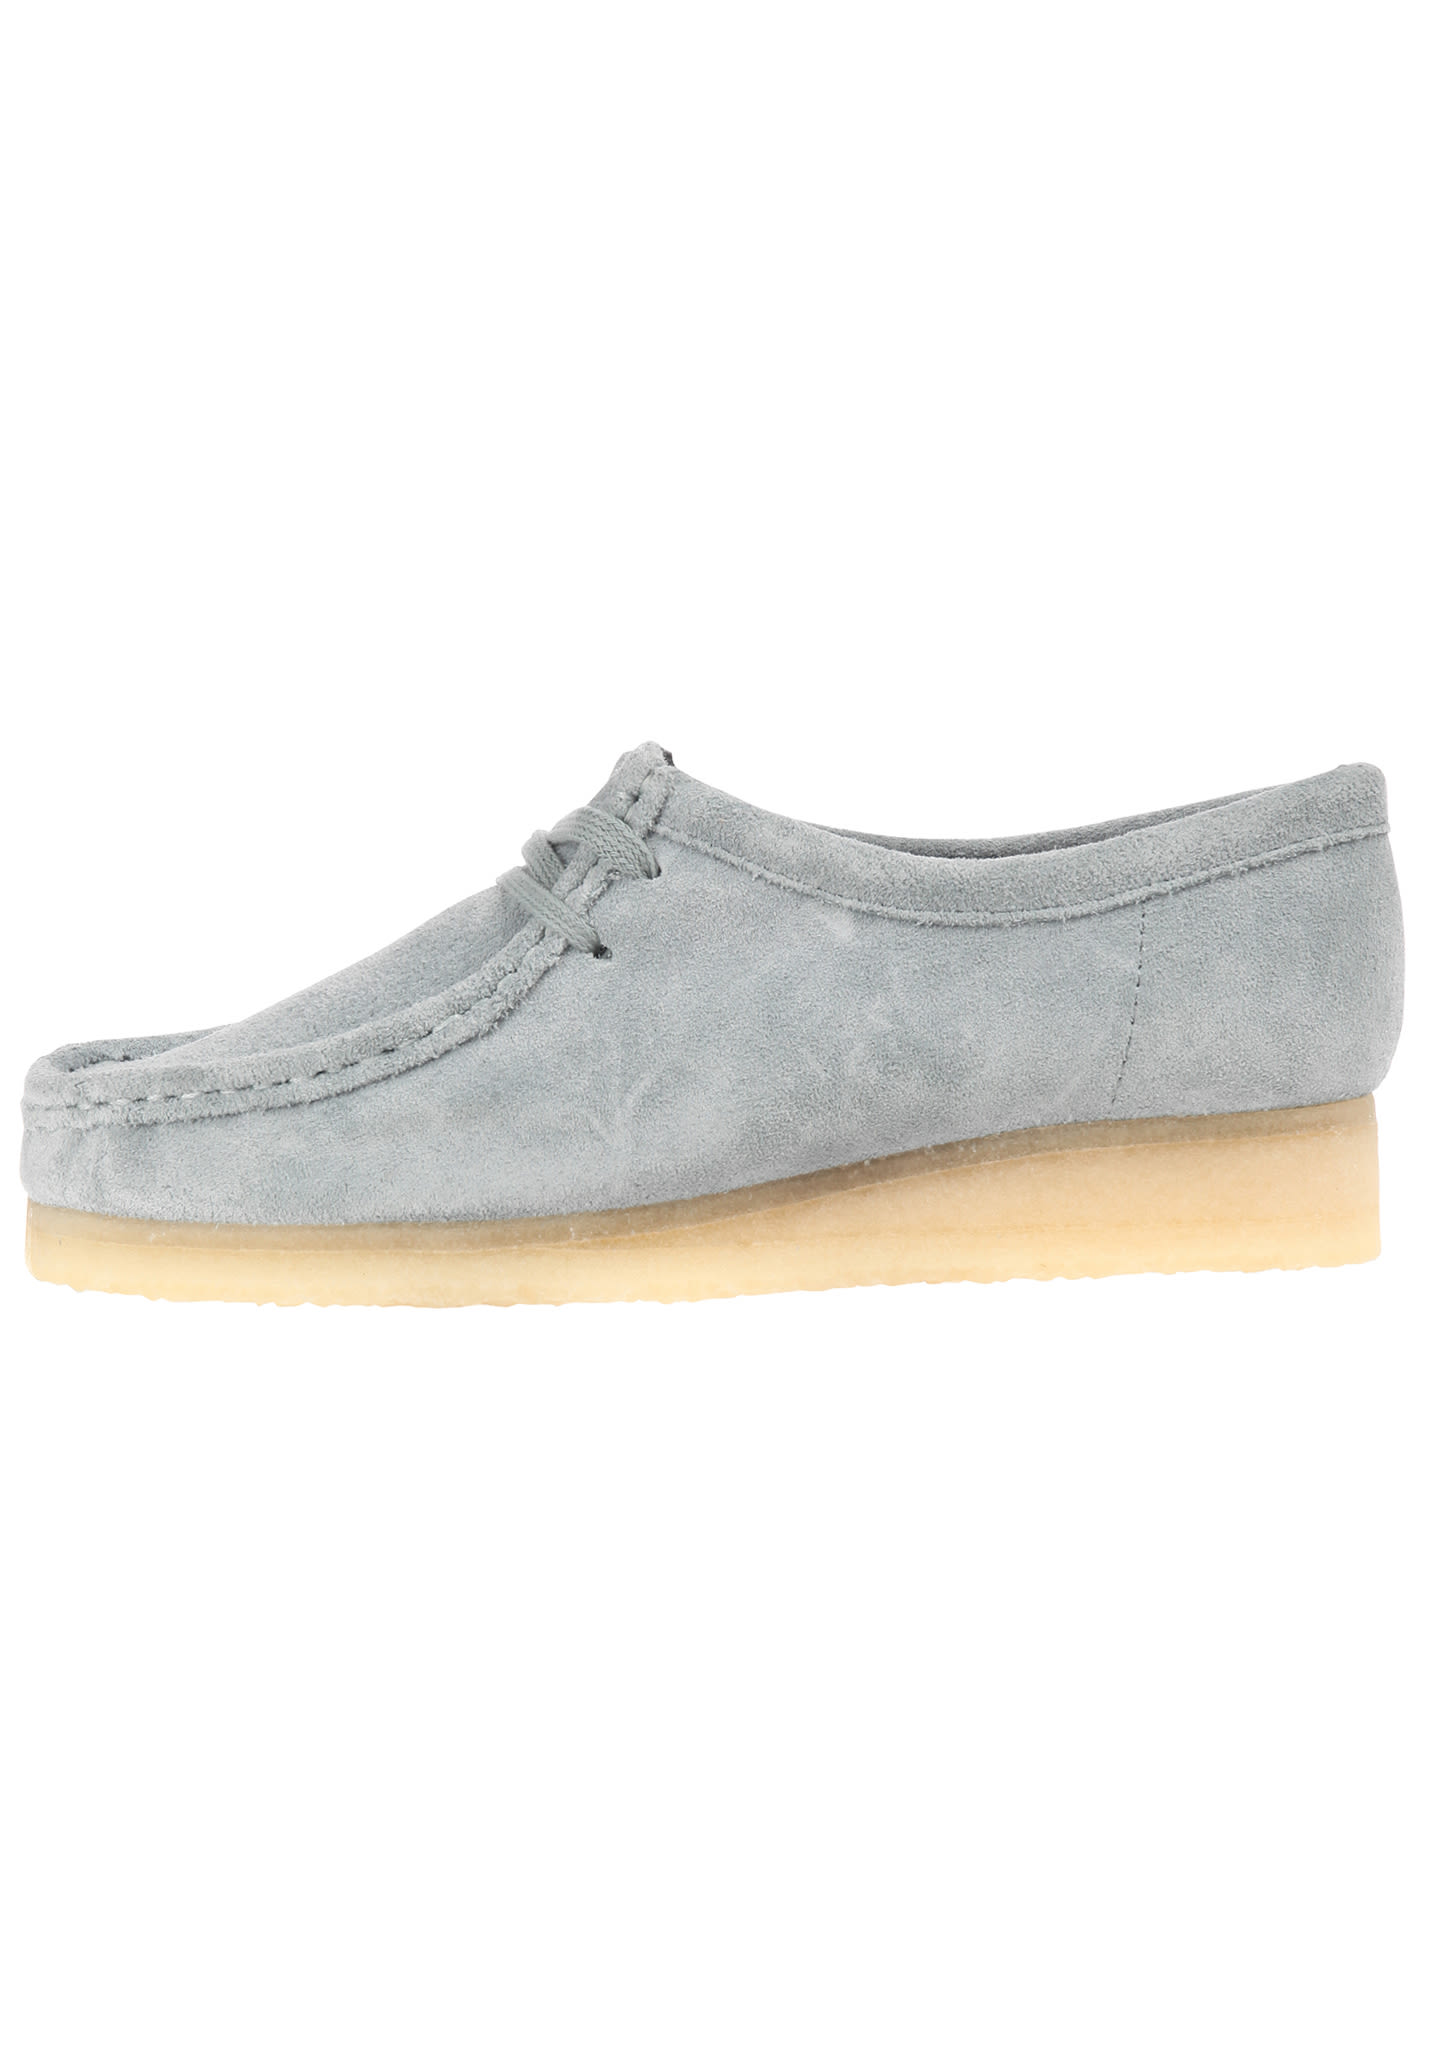 best service 85e59 d197f CLARKS ORIGINALS Wallabee - Fashion Schuhe für Damen - Blau